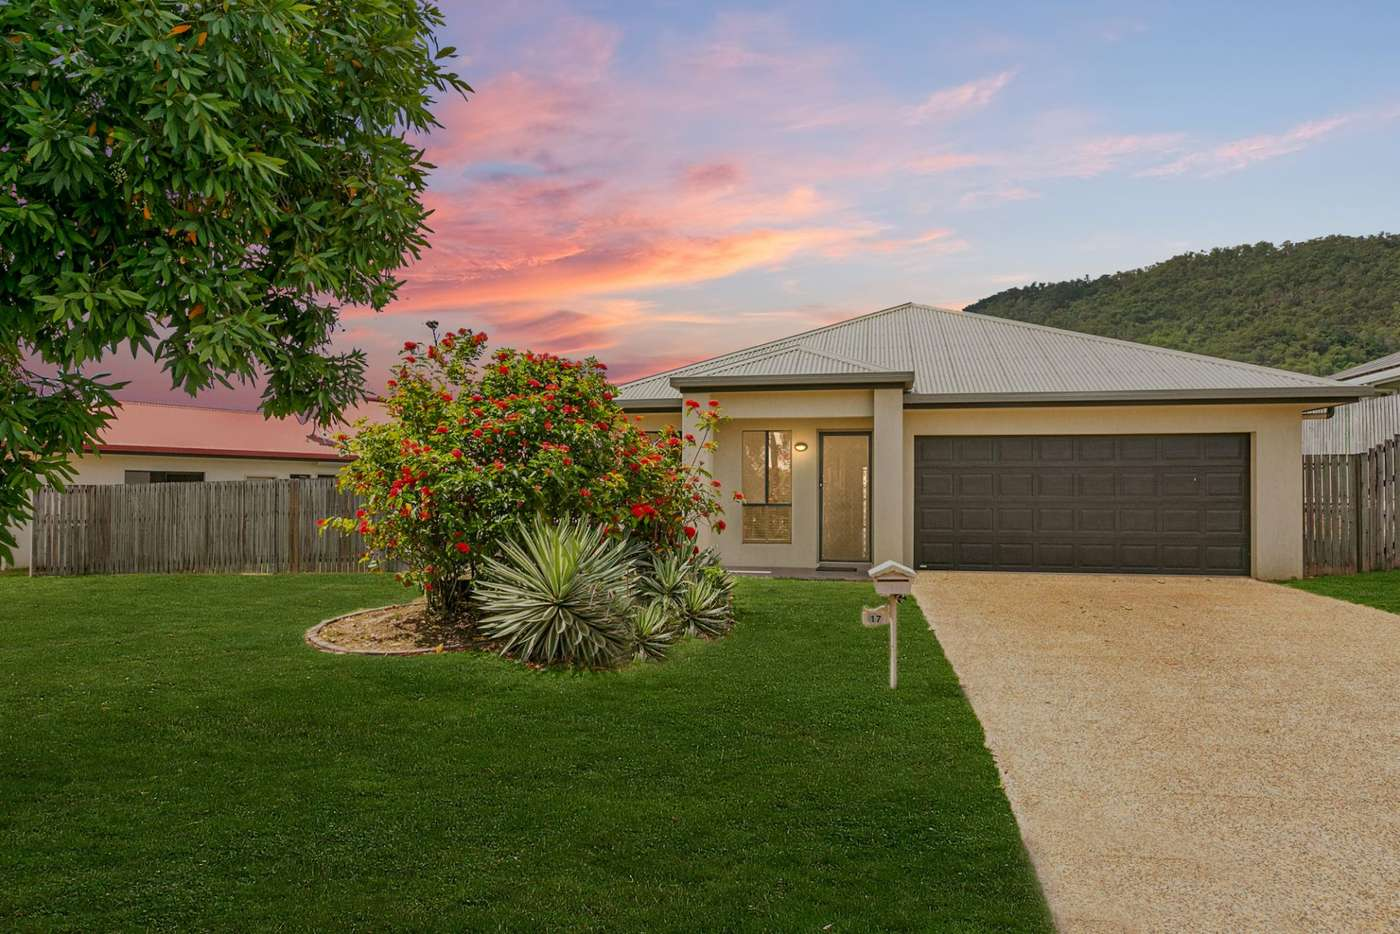 Main view of Homely house listing, 17 Trembath Drive, Gordonvale QLD 4865